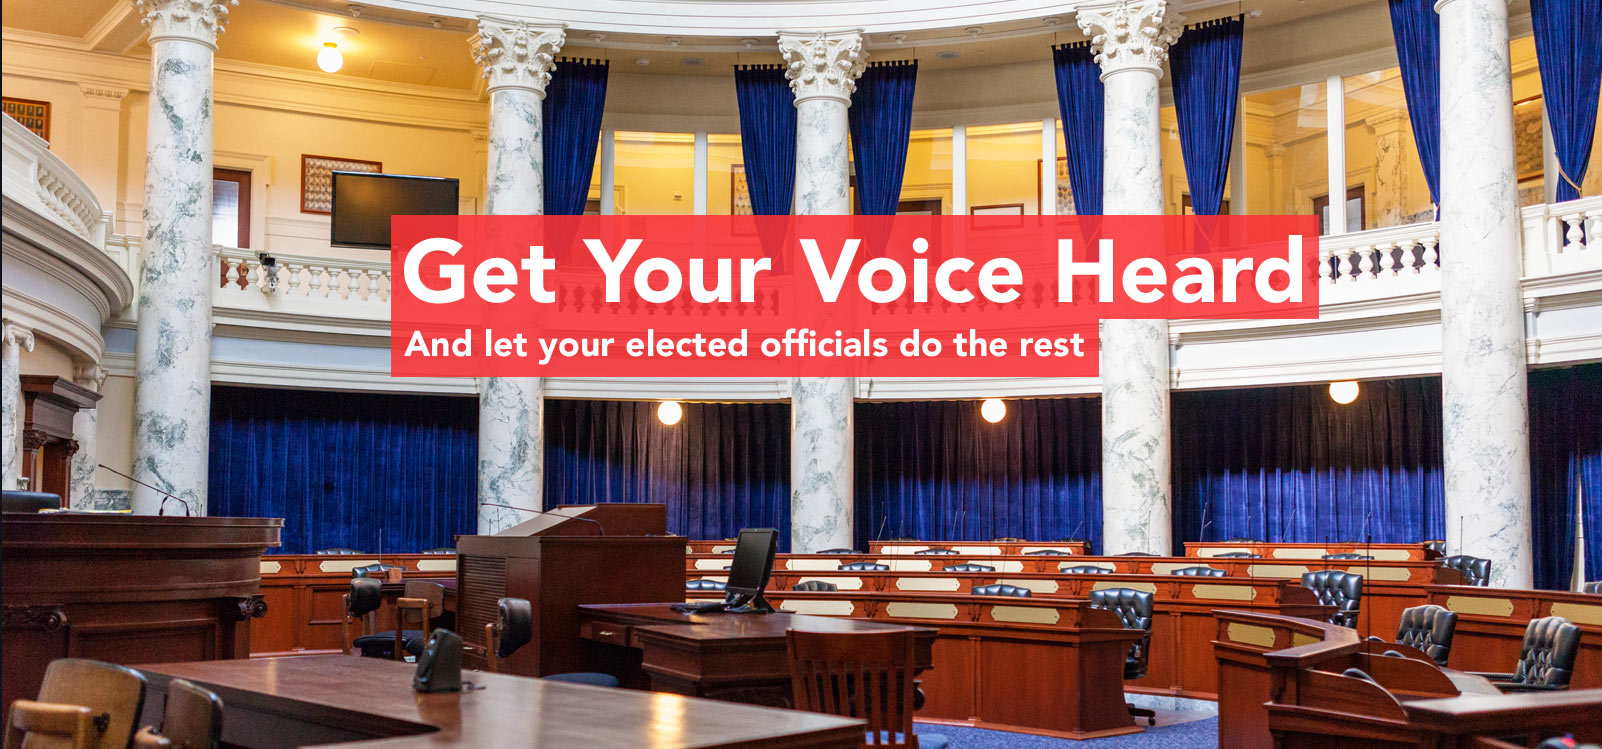 Get your voice heard and let your elected officials do the rest